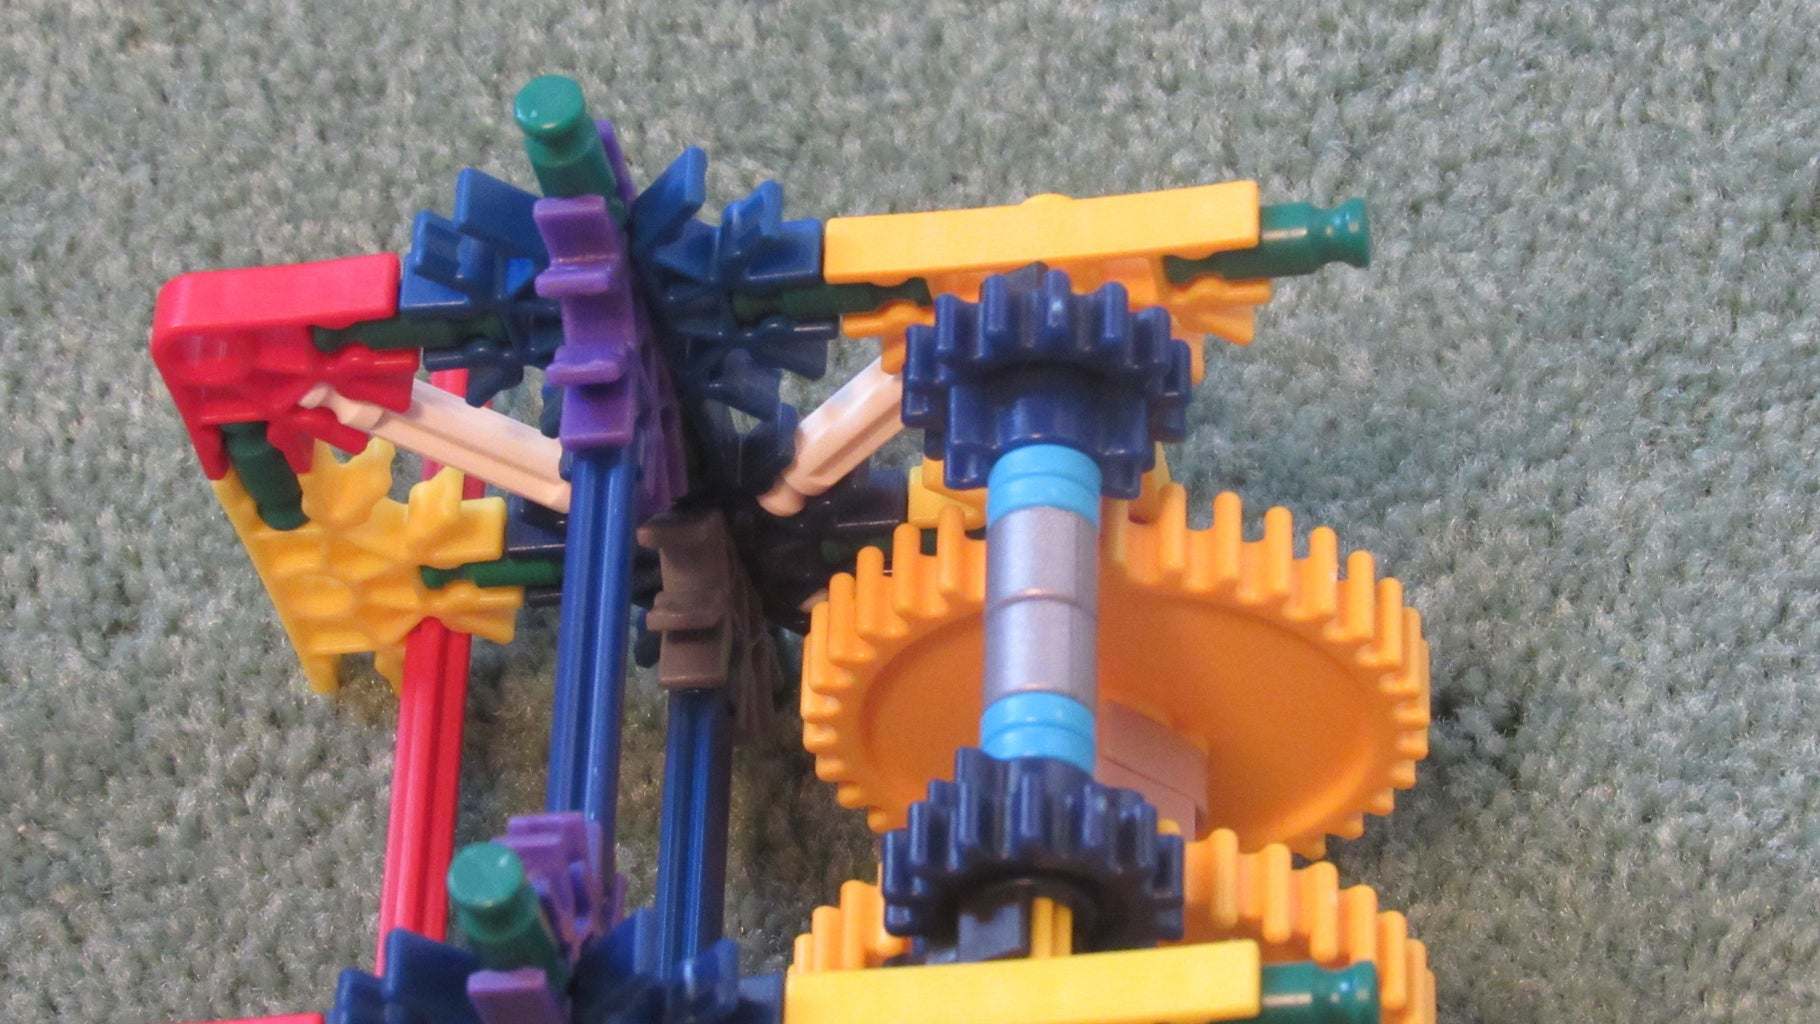 The Gears Pt. 1